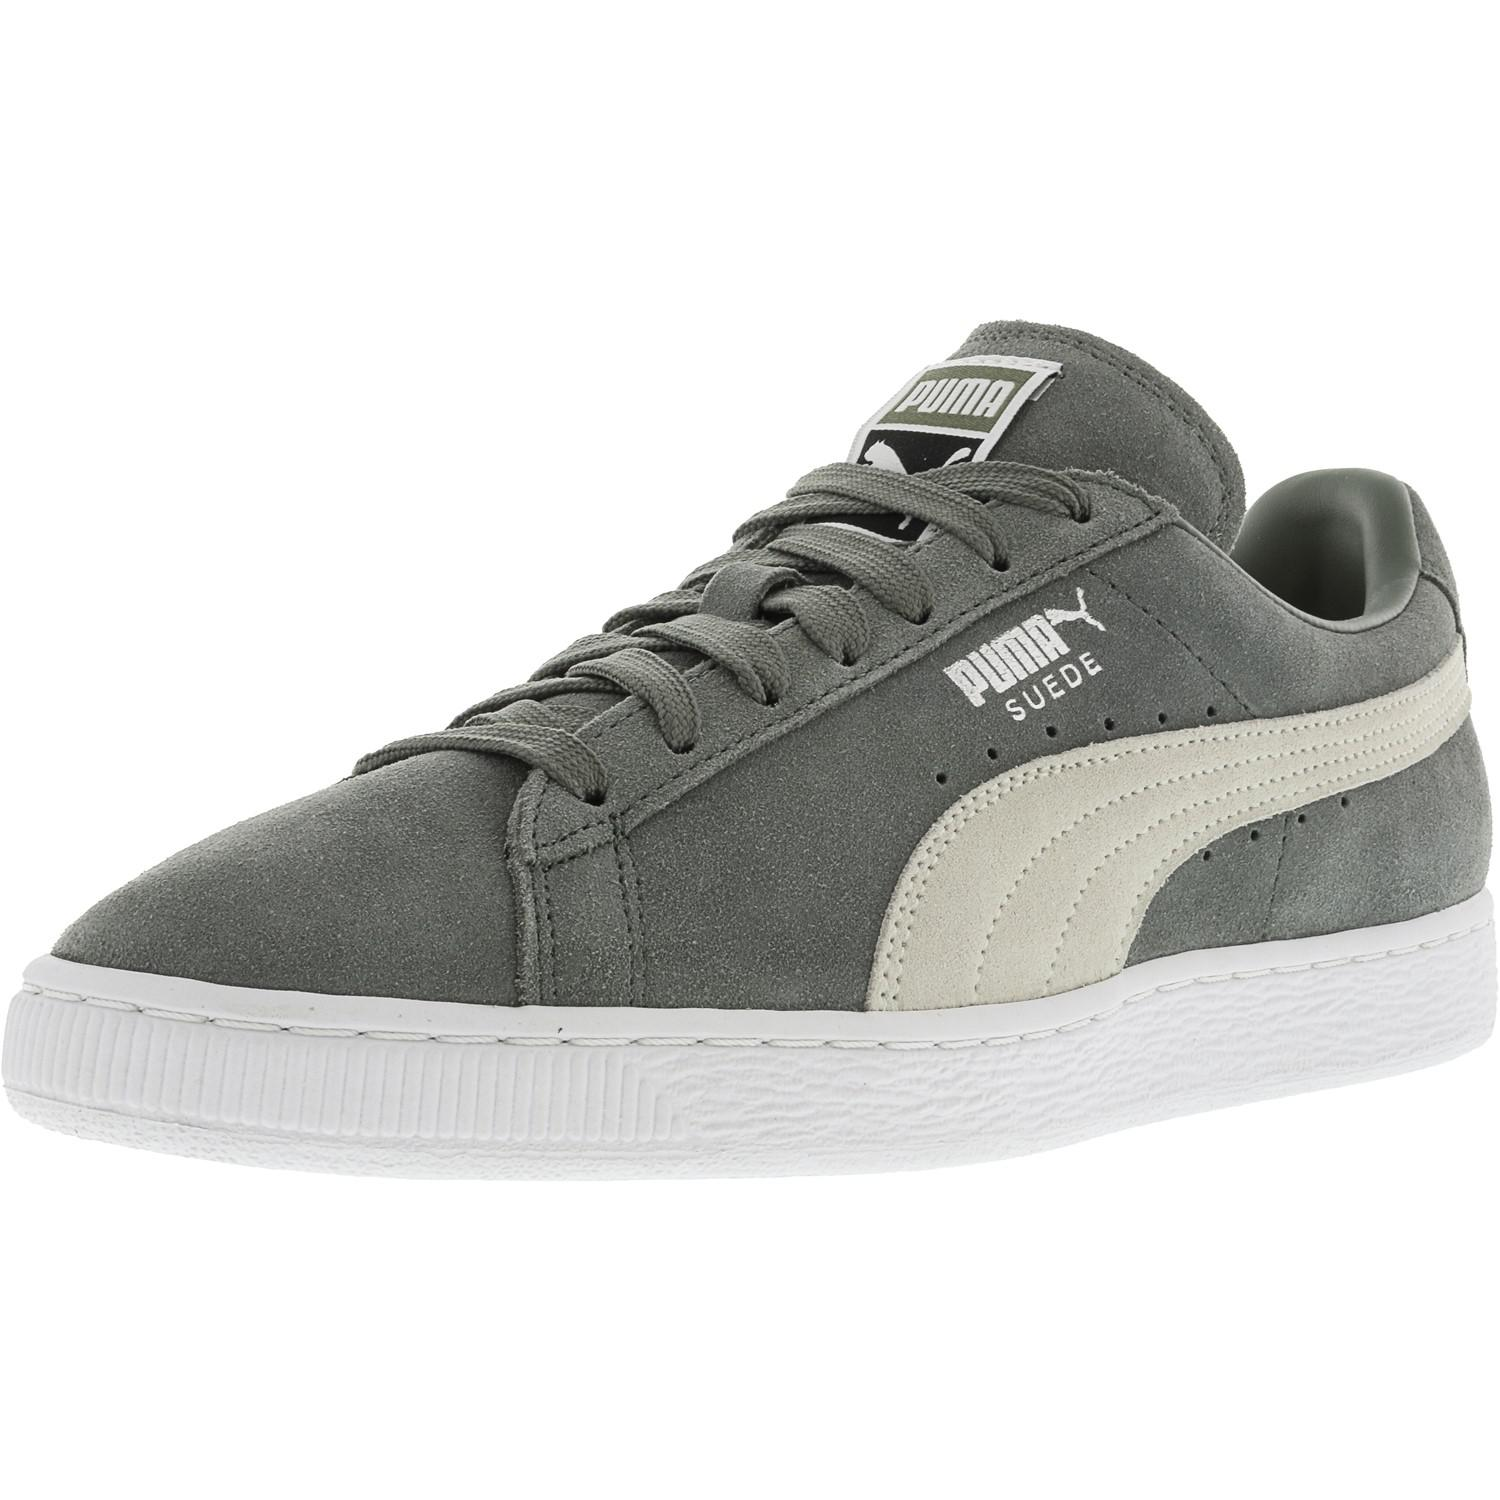 Lyst PUMA Classic + Suede Agave Green White Ankle high